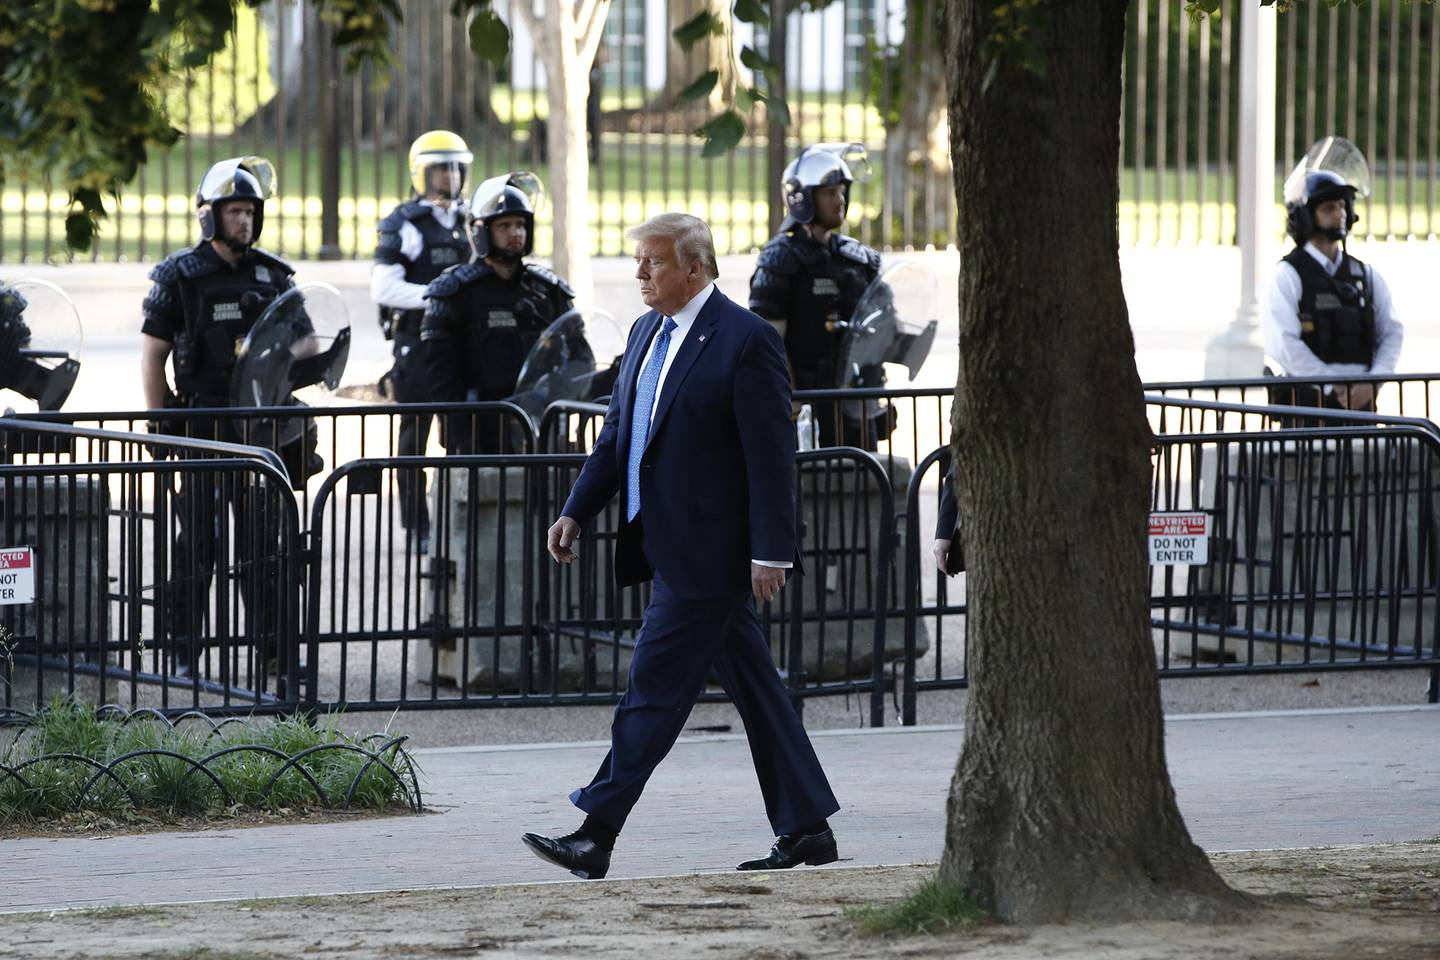 President Donald Trump walks in Lafayette Park to visit outside St. John's Church across from the White House Monday, June 1, 2020, in Washington. Part of the church was set on fire during protests on Sunday night.